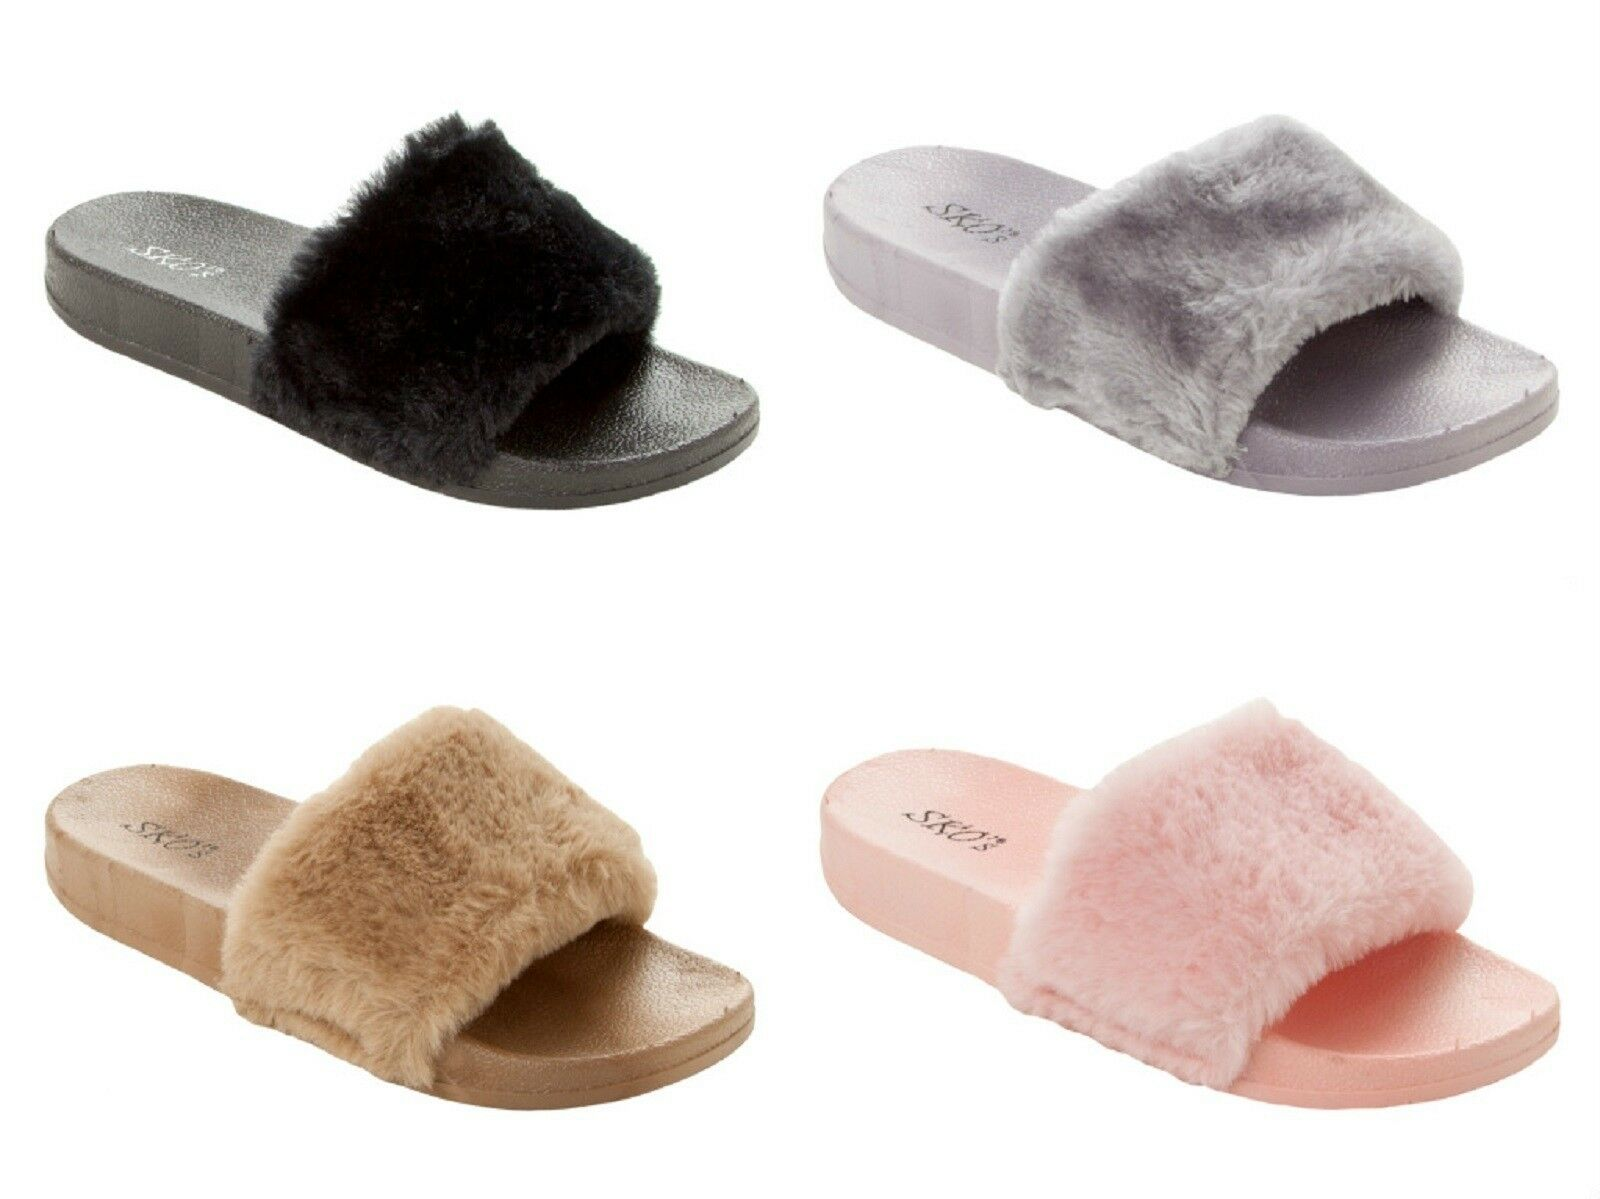 LADIES SANDALS FAUX FUR SUMMER BEACH HOLIDAY SLIDERS Mujer SANDALS LADIES Zapatos SLIPPER SZ 3-8 053837